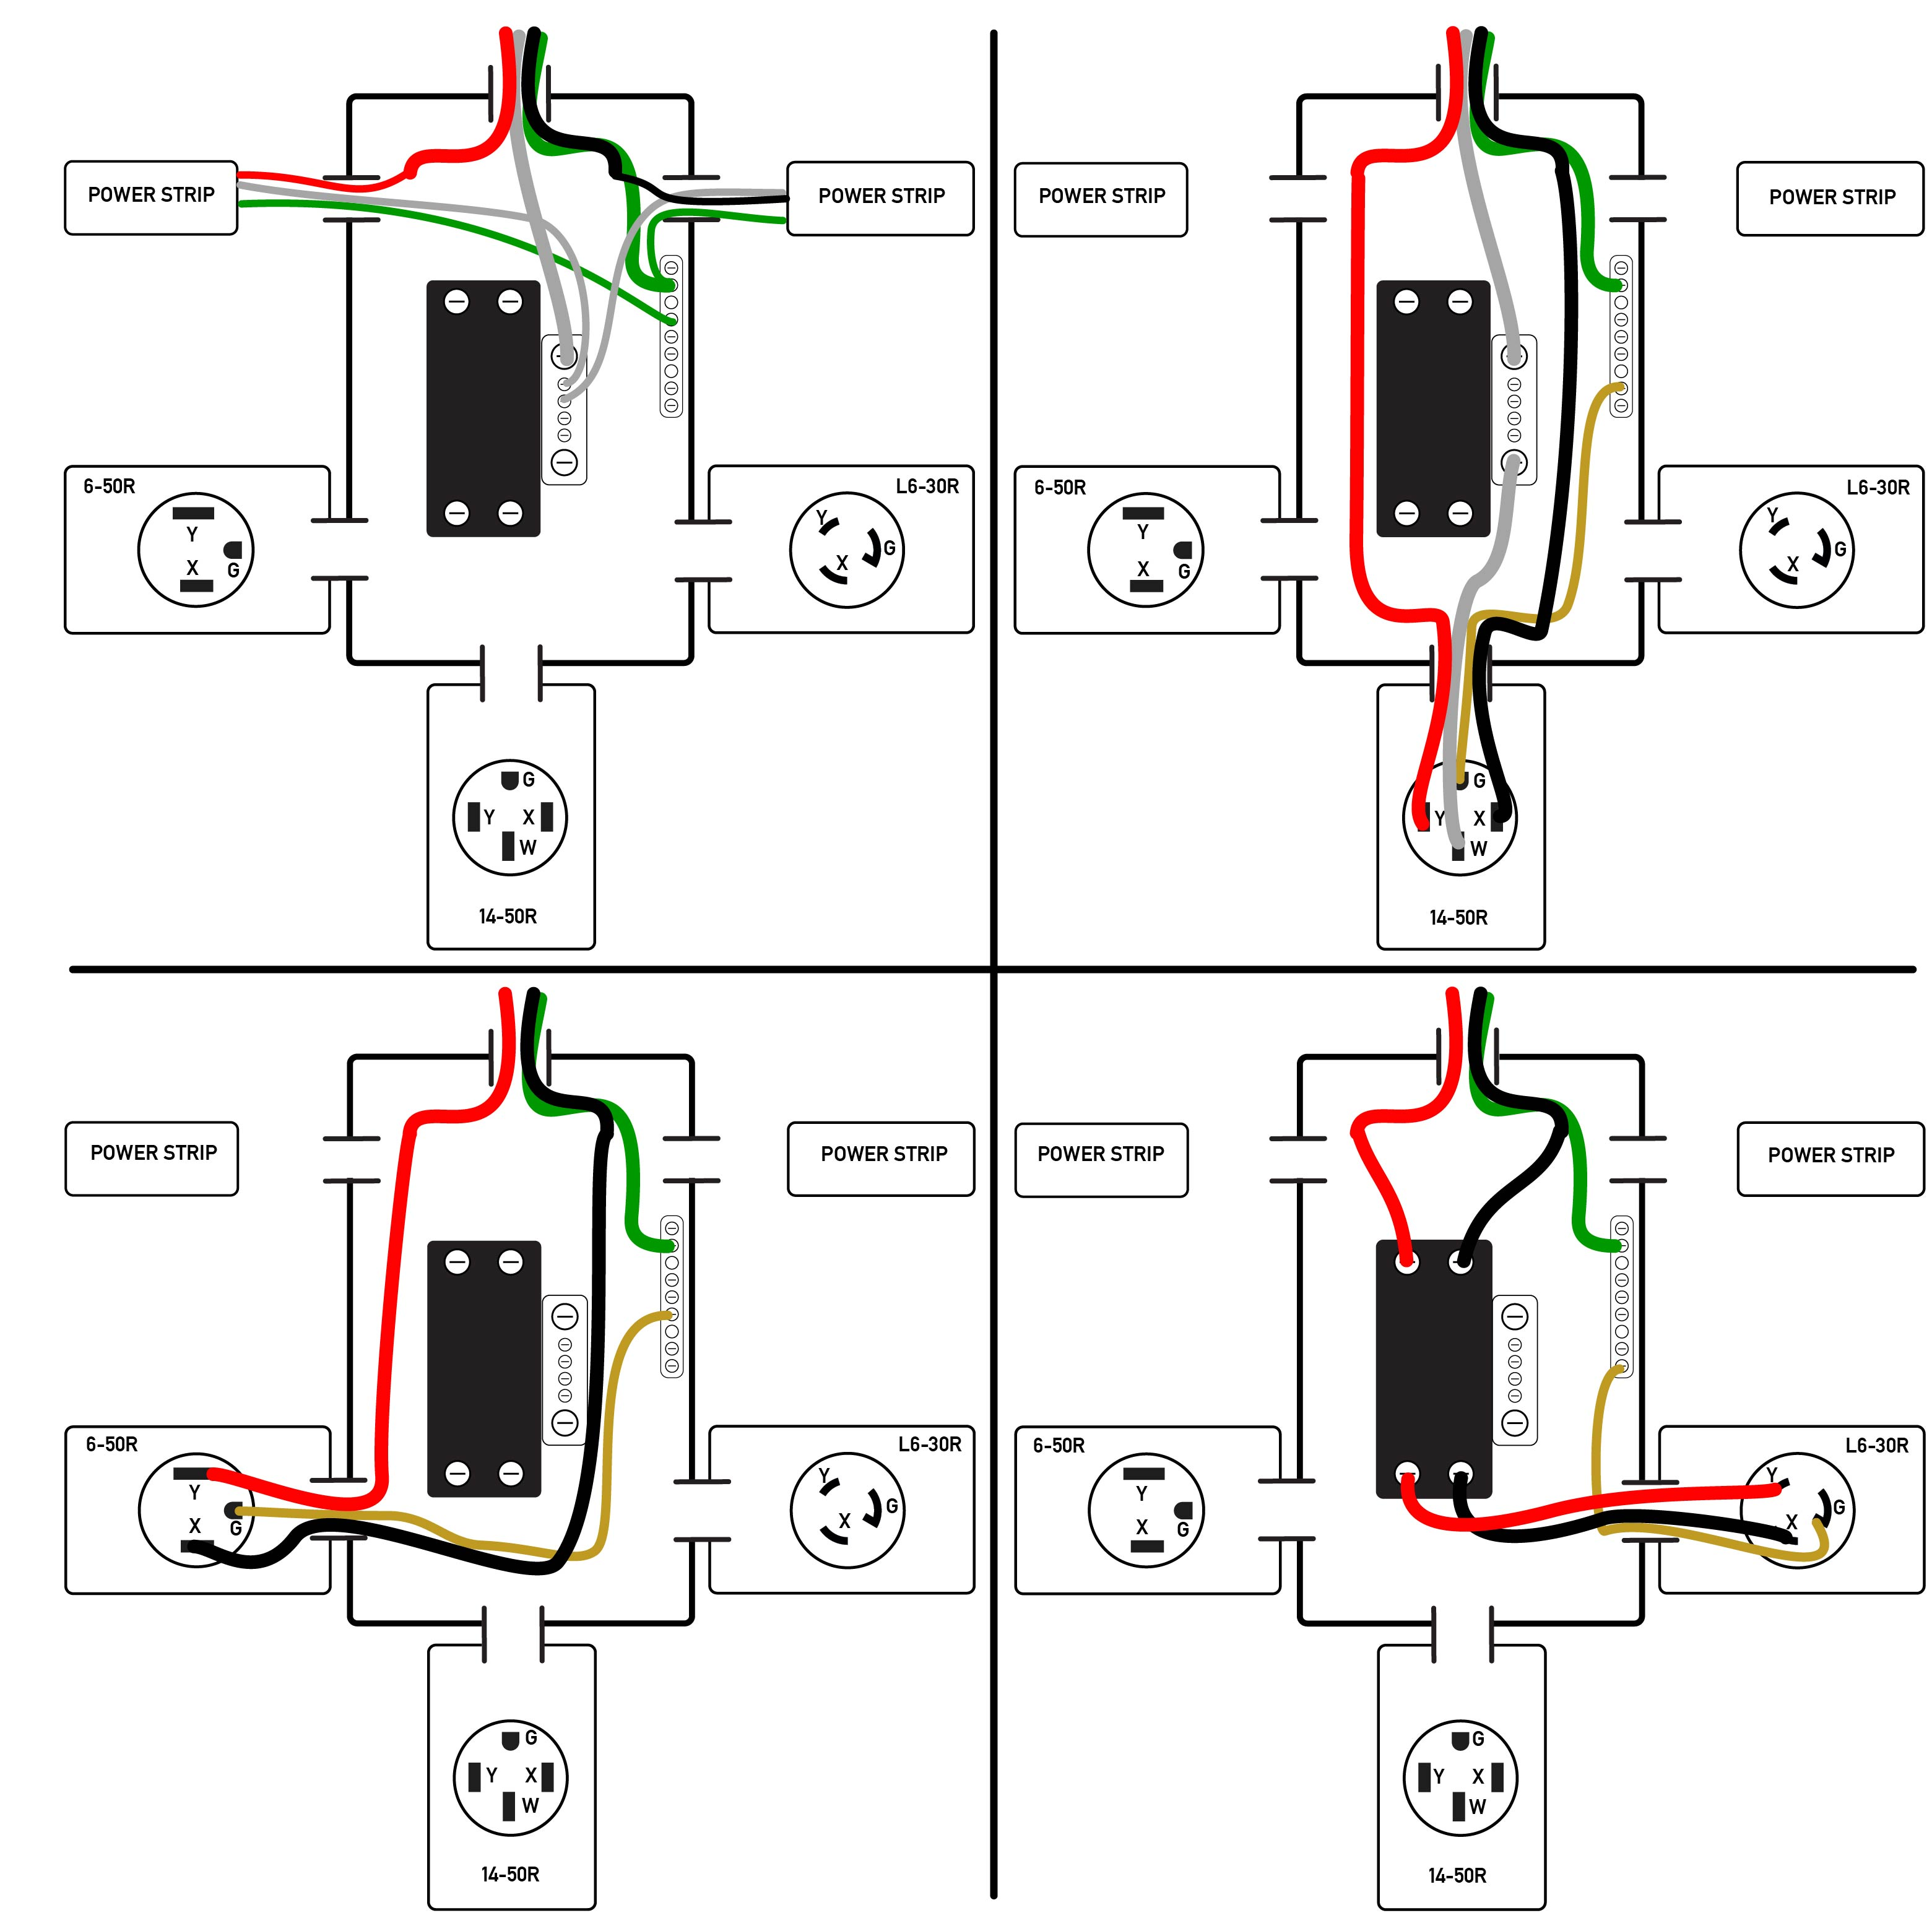 Figure 21?resize=620%2C614 build a 240v power adapter for your mig welder make power strip wiring diagram at readyjetset.co